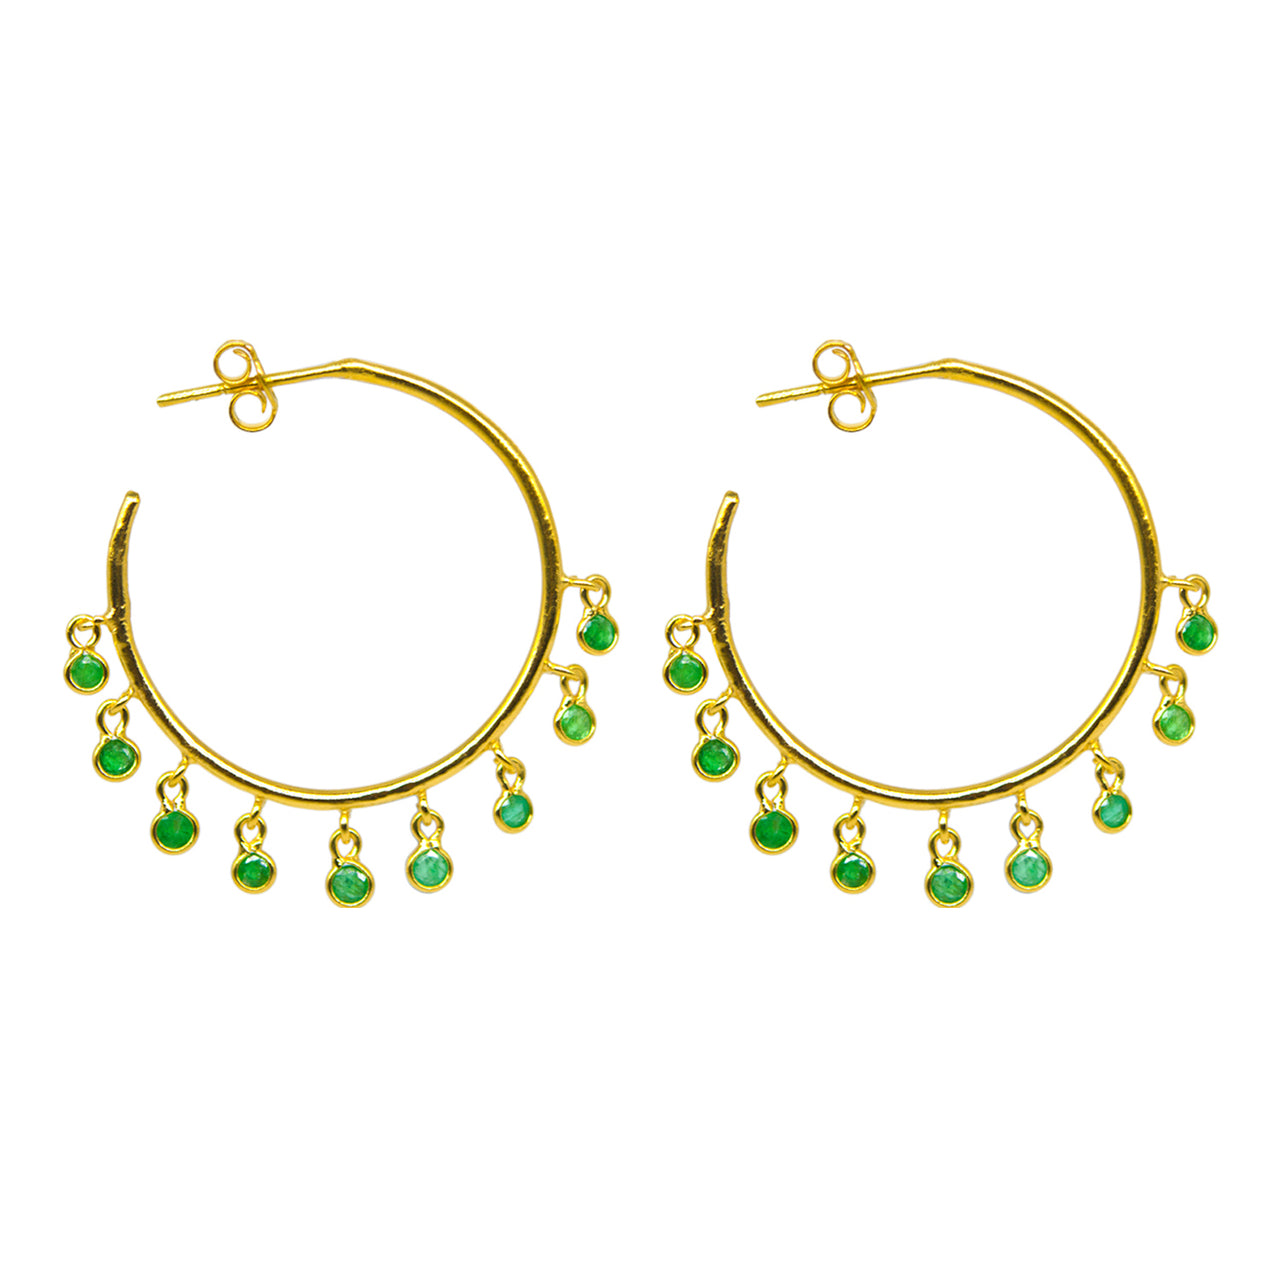 Jerry Emerald Hoop Earrings